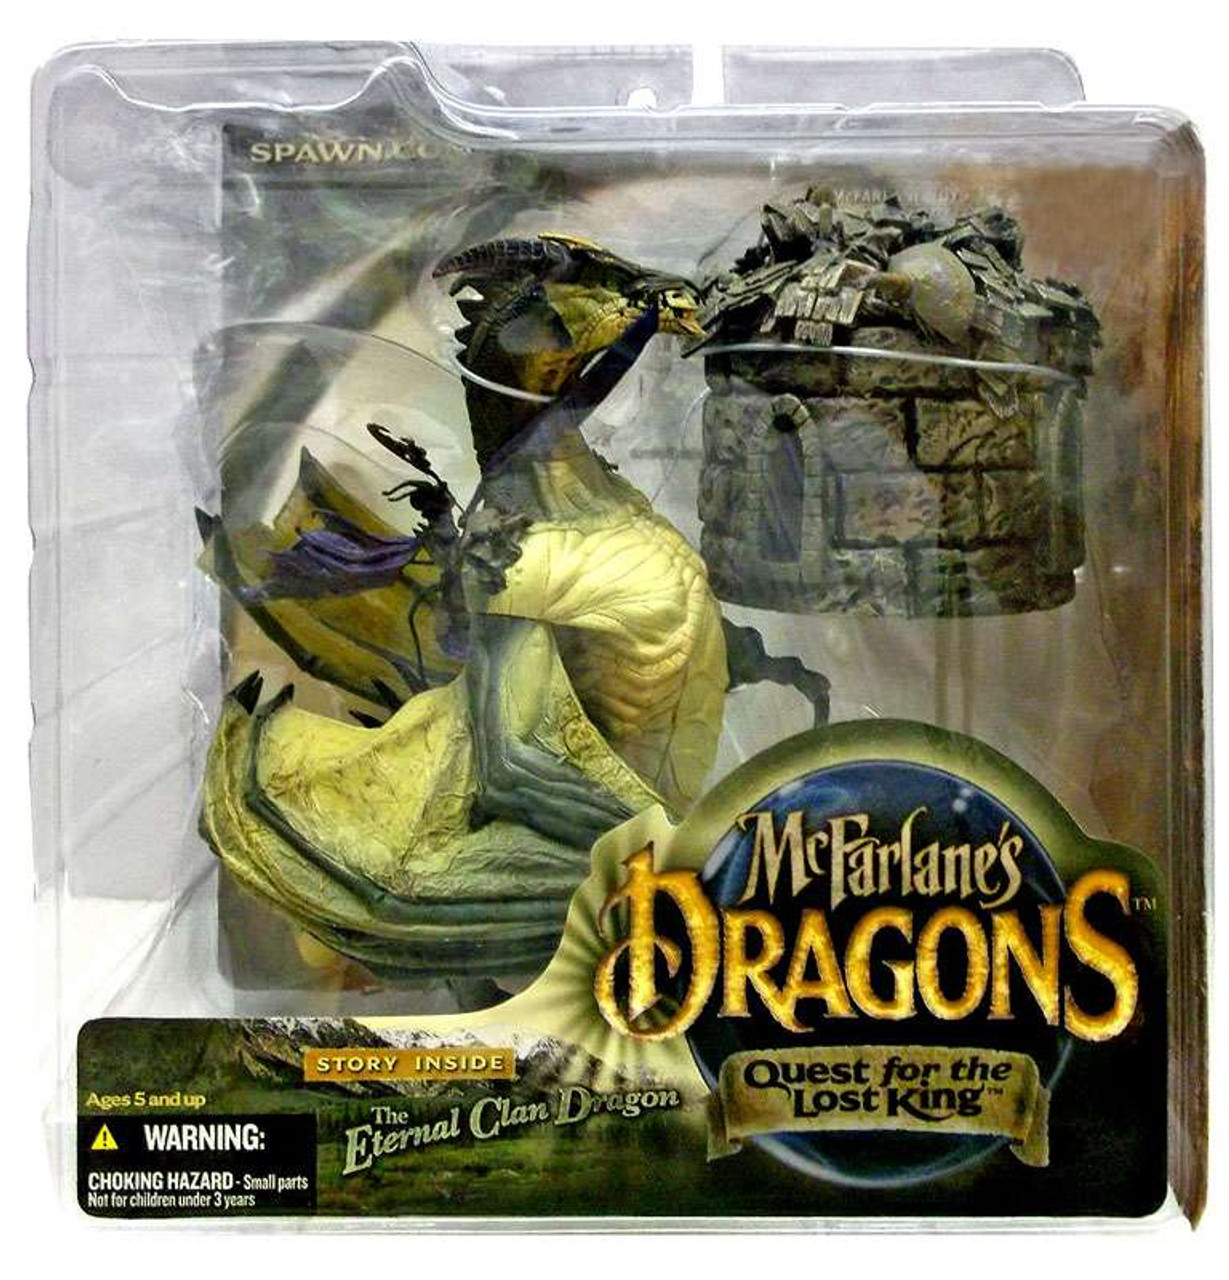 McFarlane Toys Dragons Quest for the Lost King Series 1 The Eternal Clan Dragon Action Figure